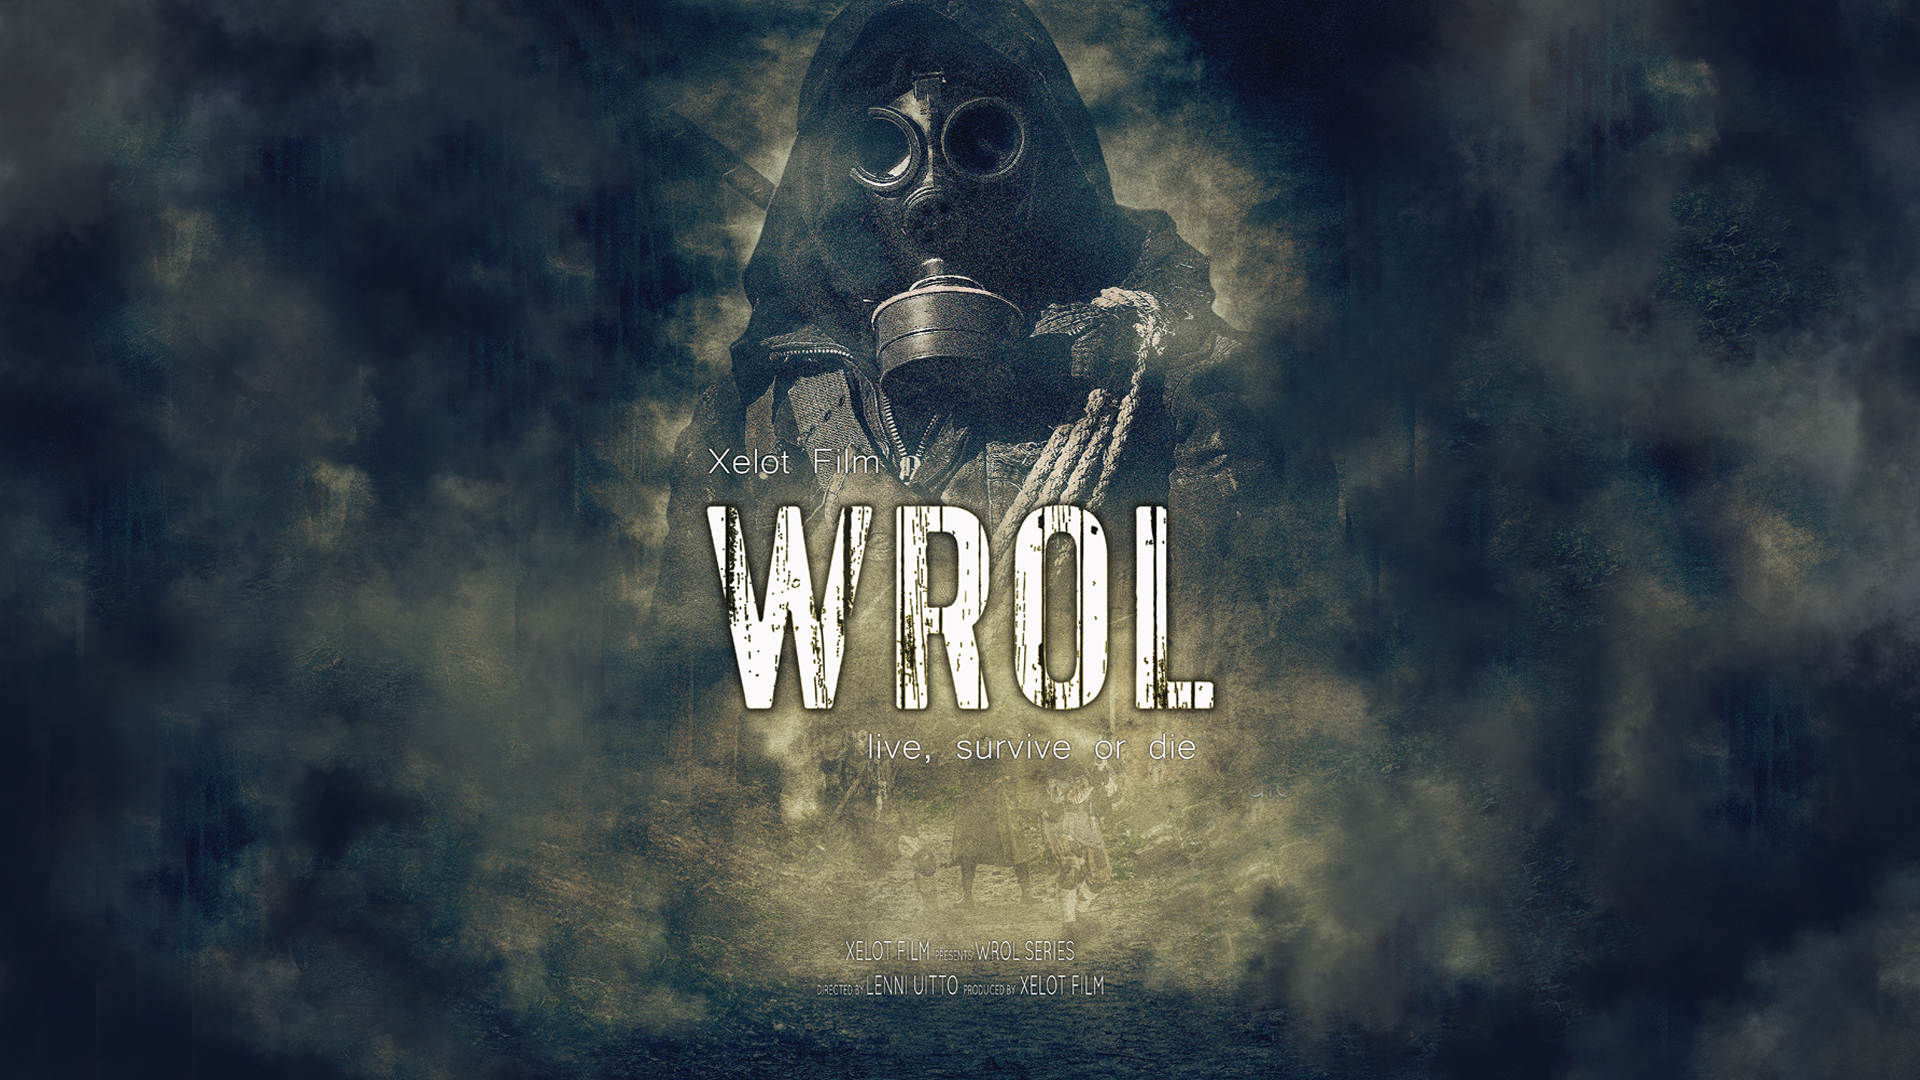 WROL Series 2016-???? Currently in production the award winning series WROL can be watched at http://wrolseries.com